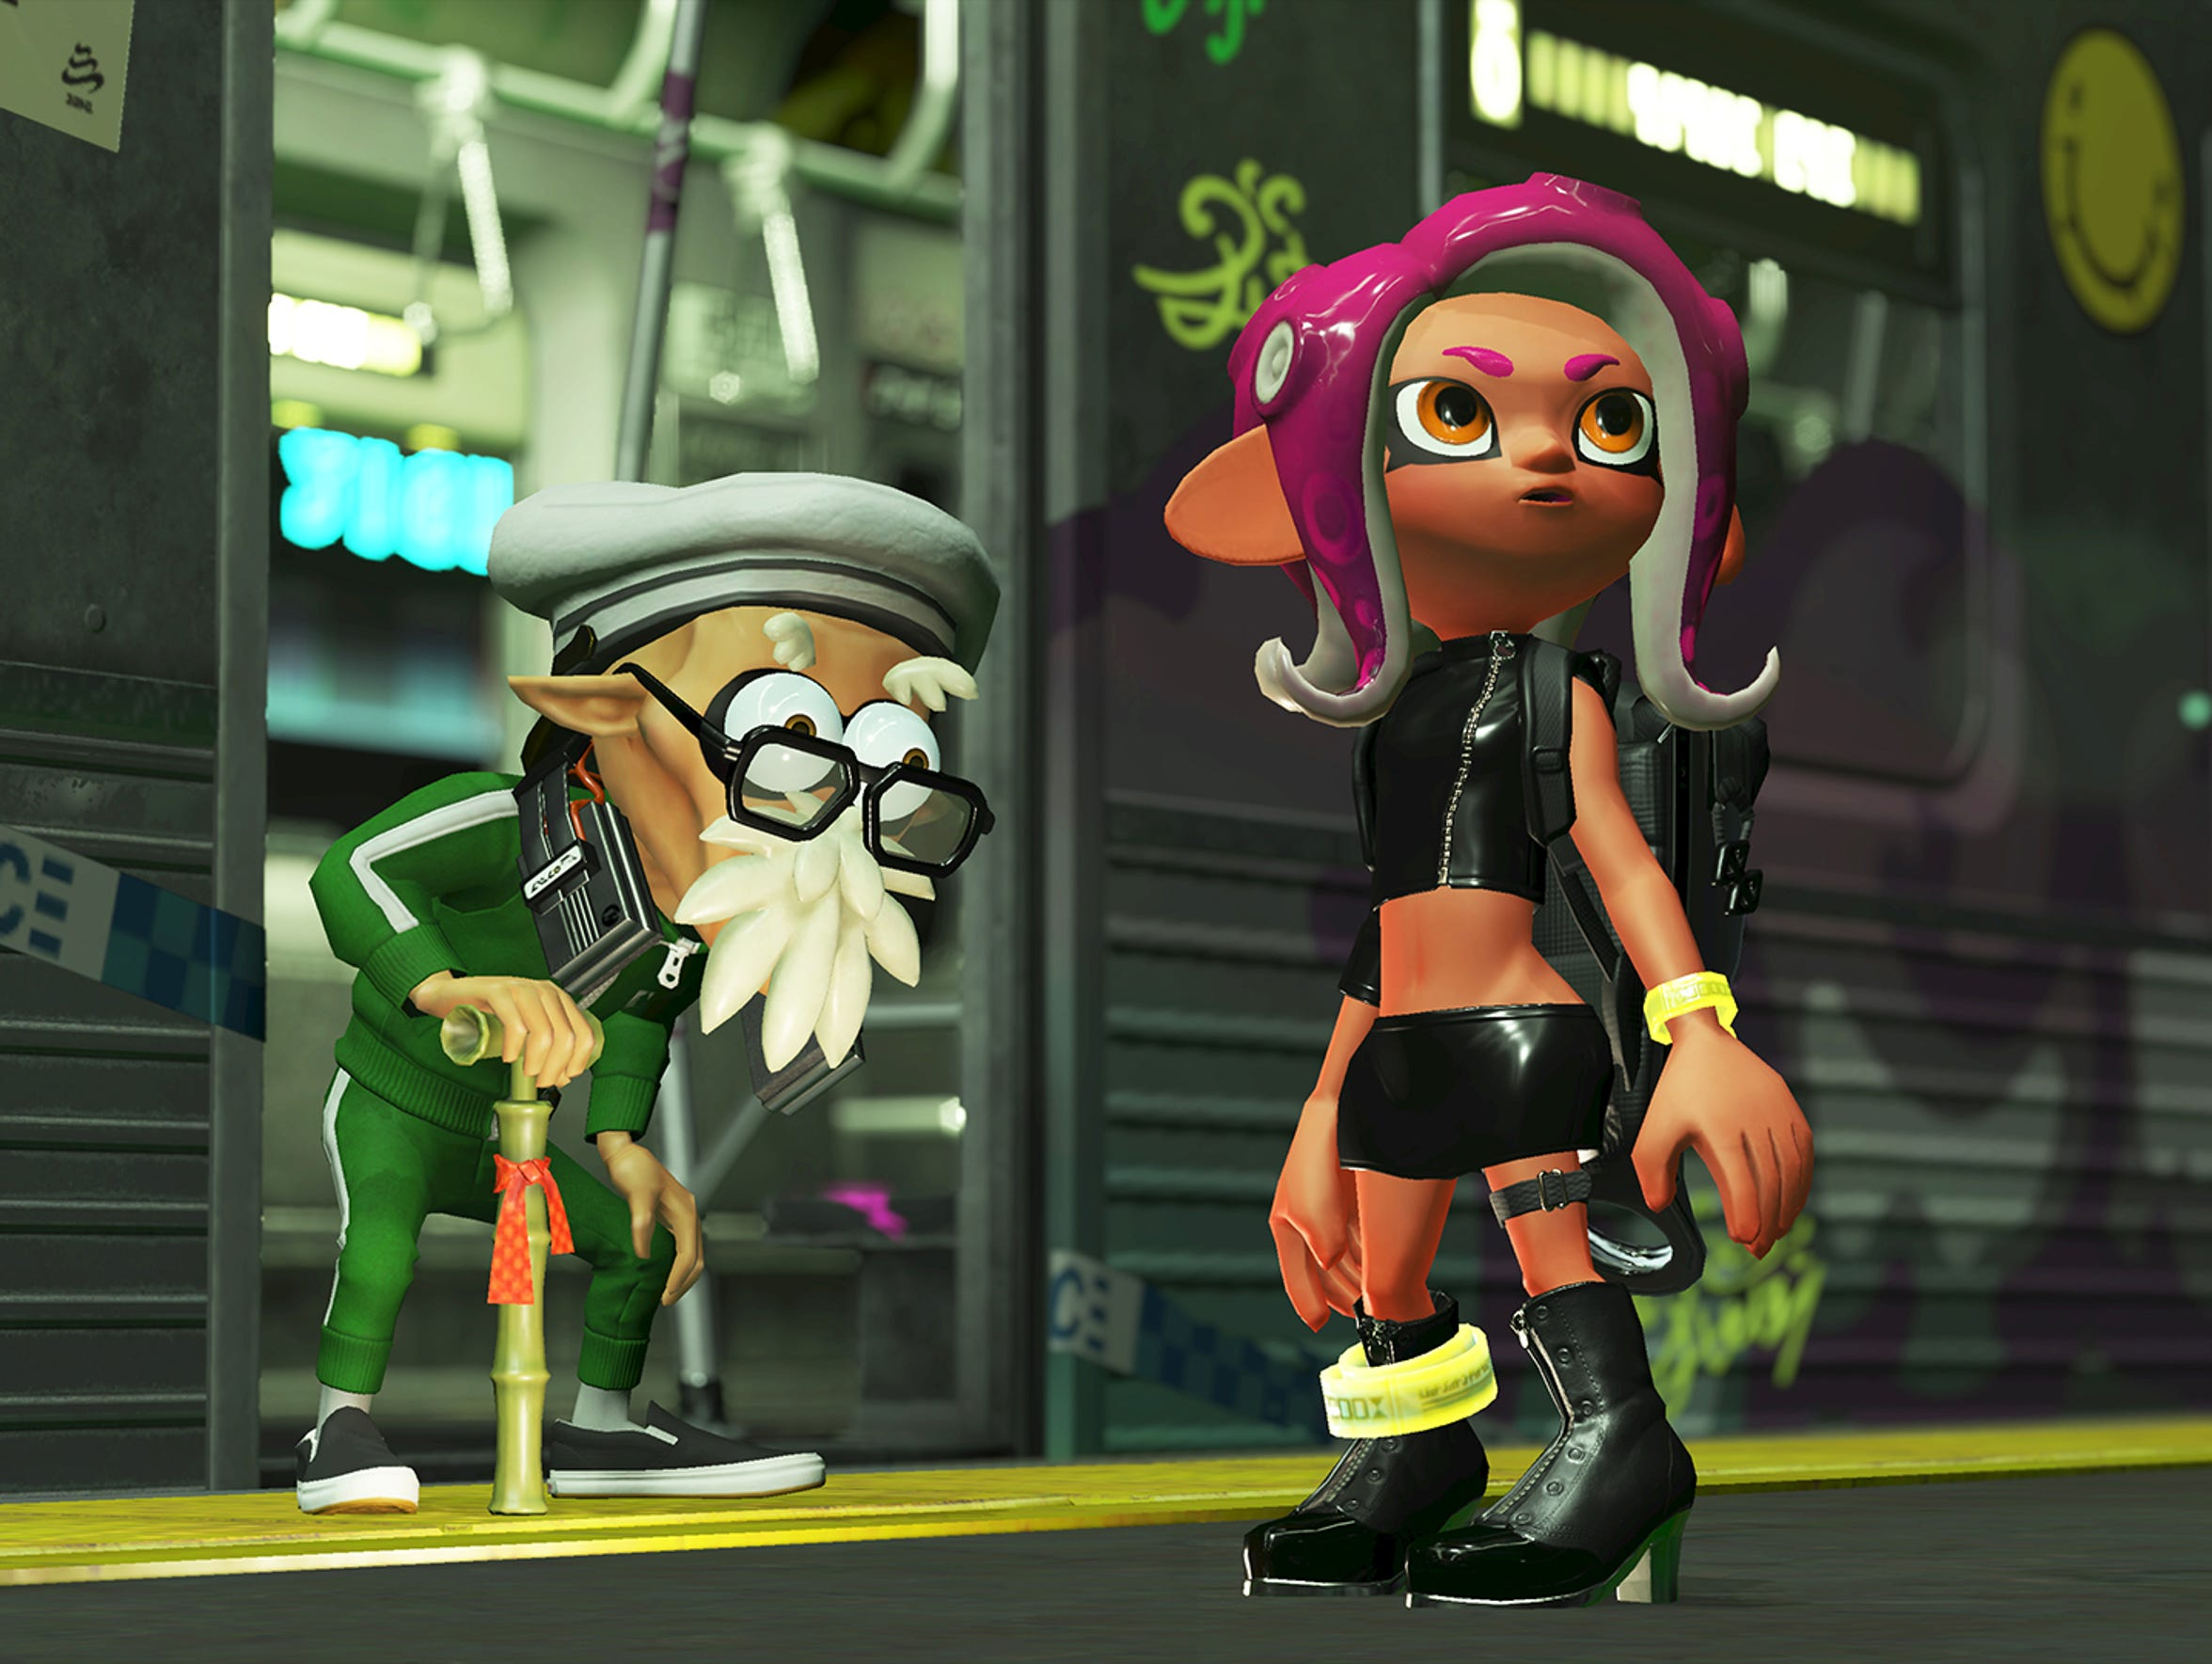 Agent 8 joins forces with Cap'n Cuttlefish in Splatoon